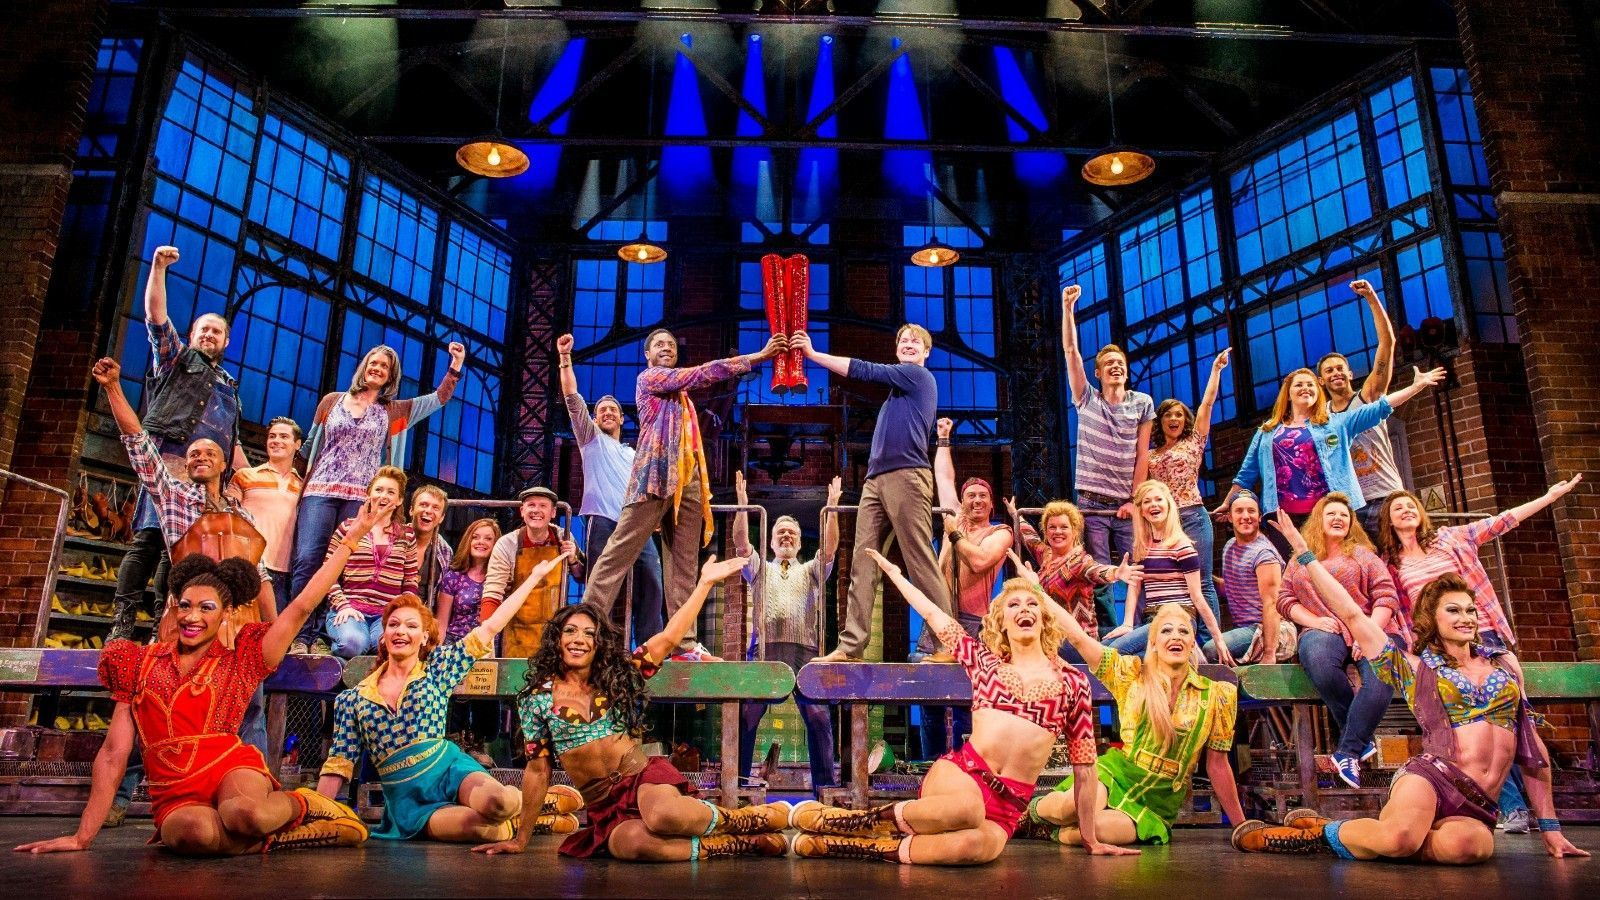 The Barclay hosts the award-winning Kinky Boots online